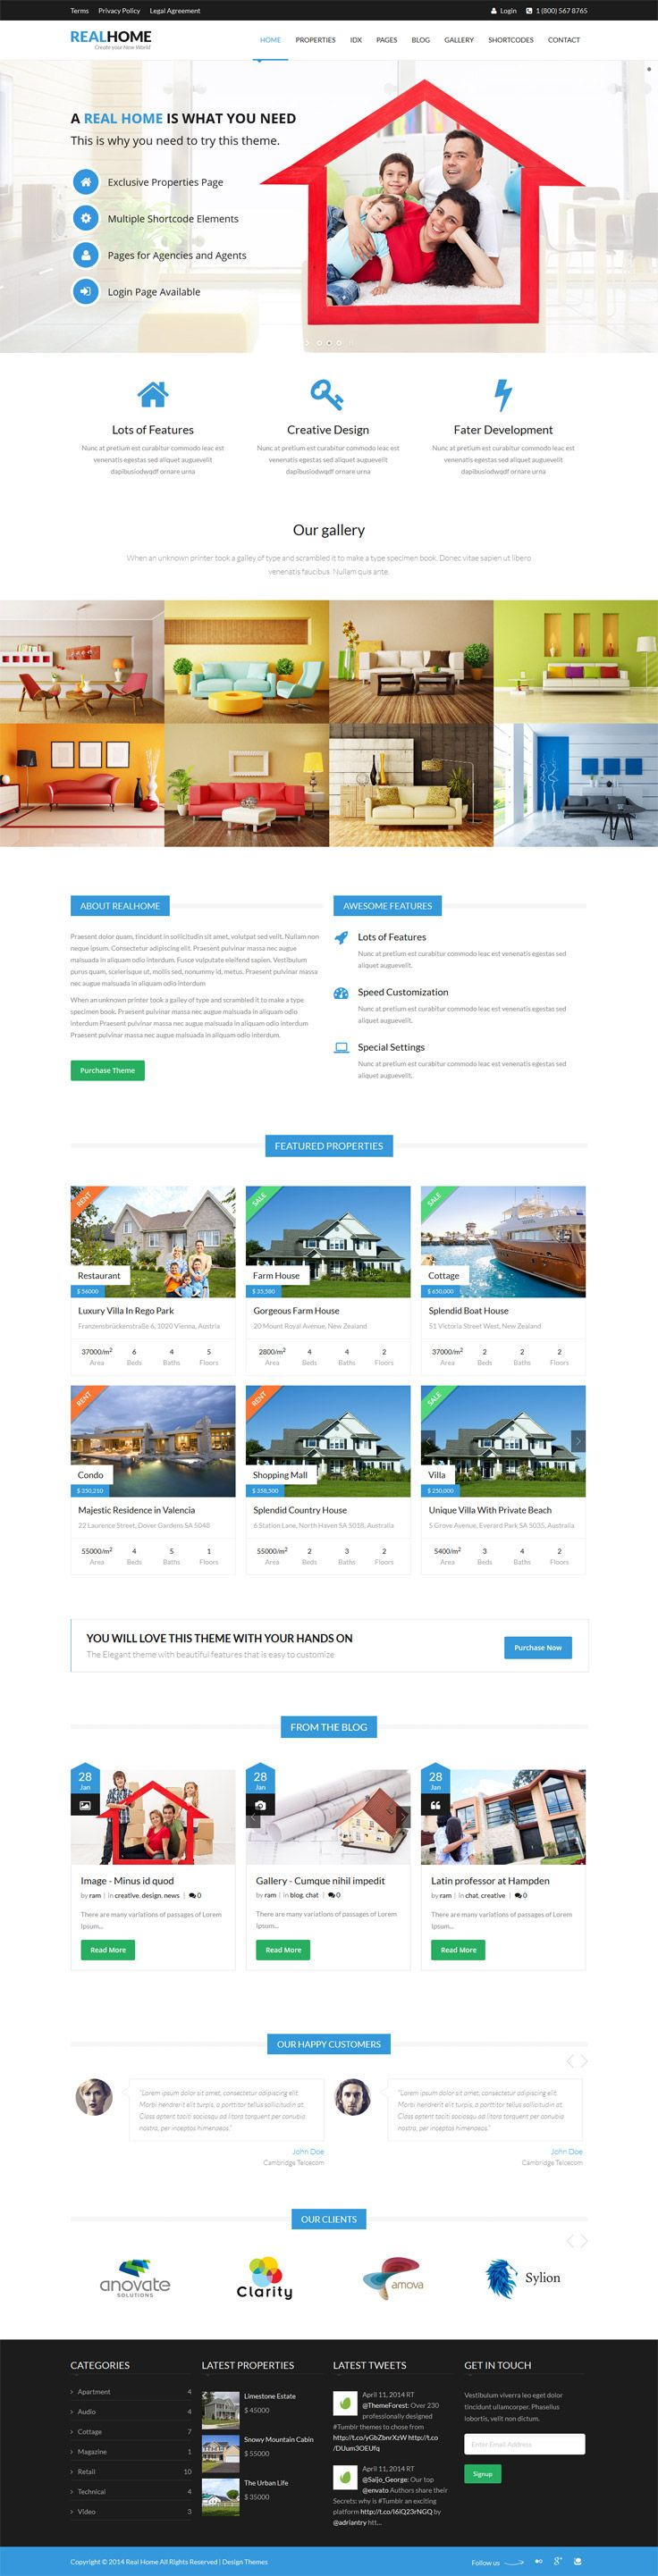 Google themes location